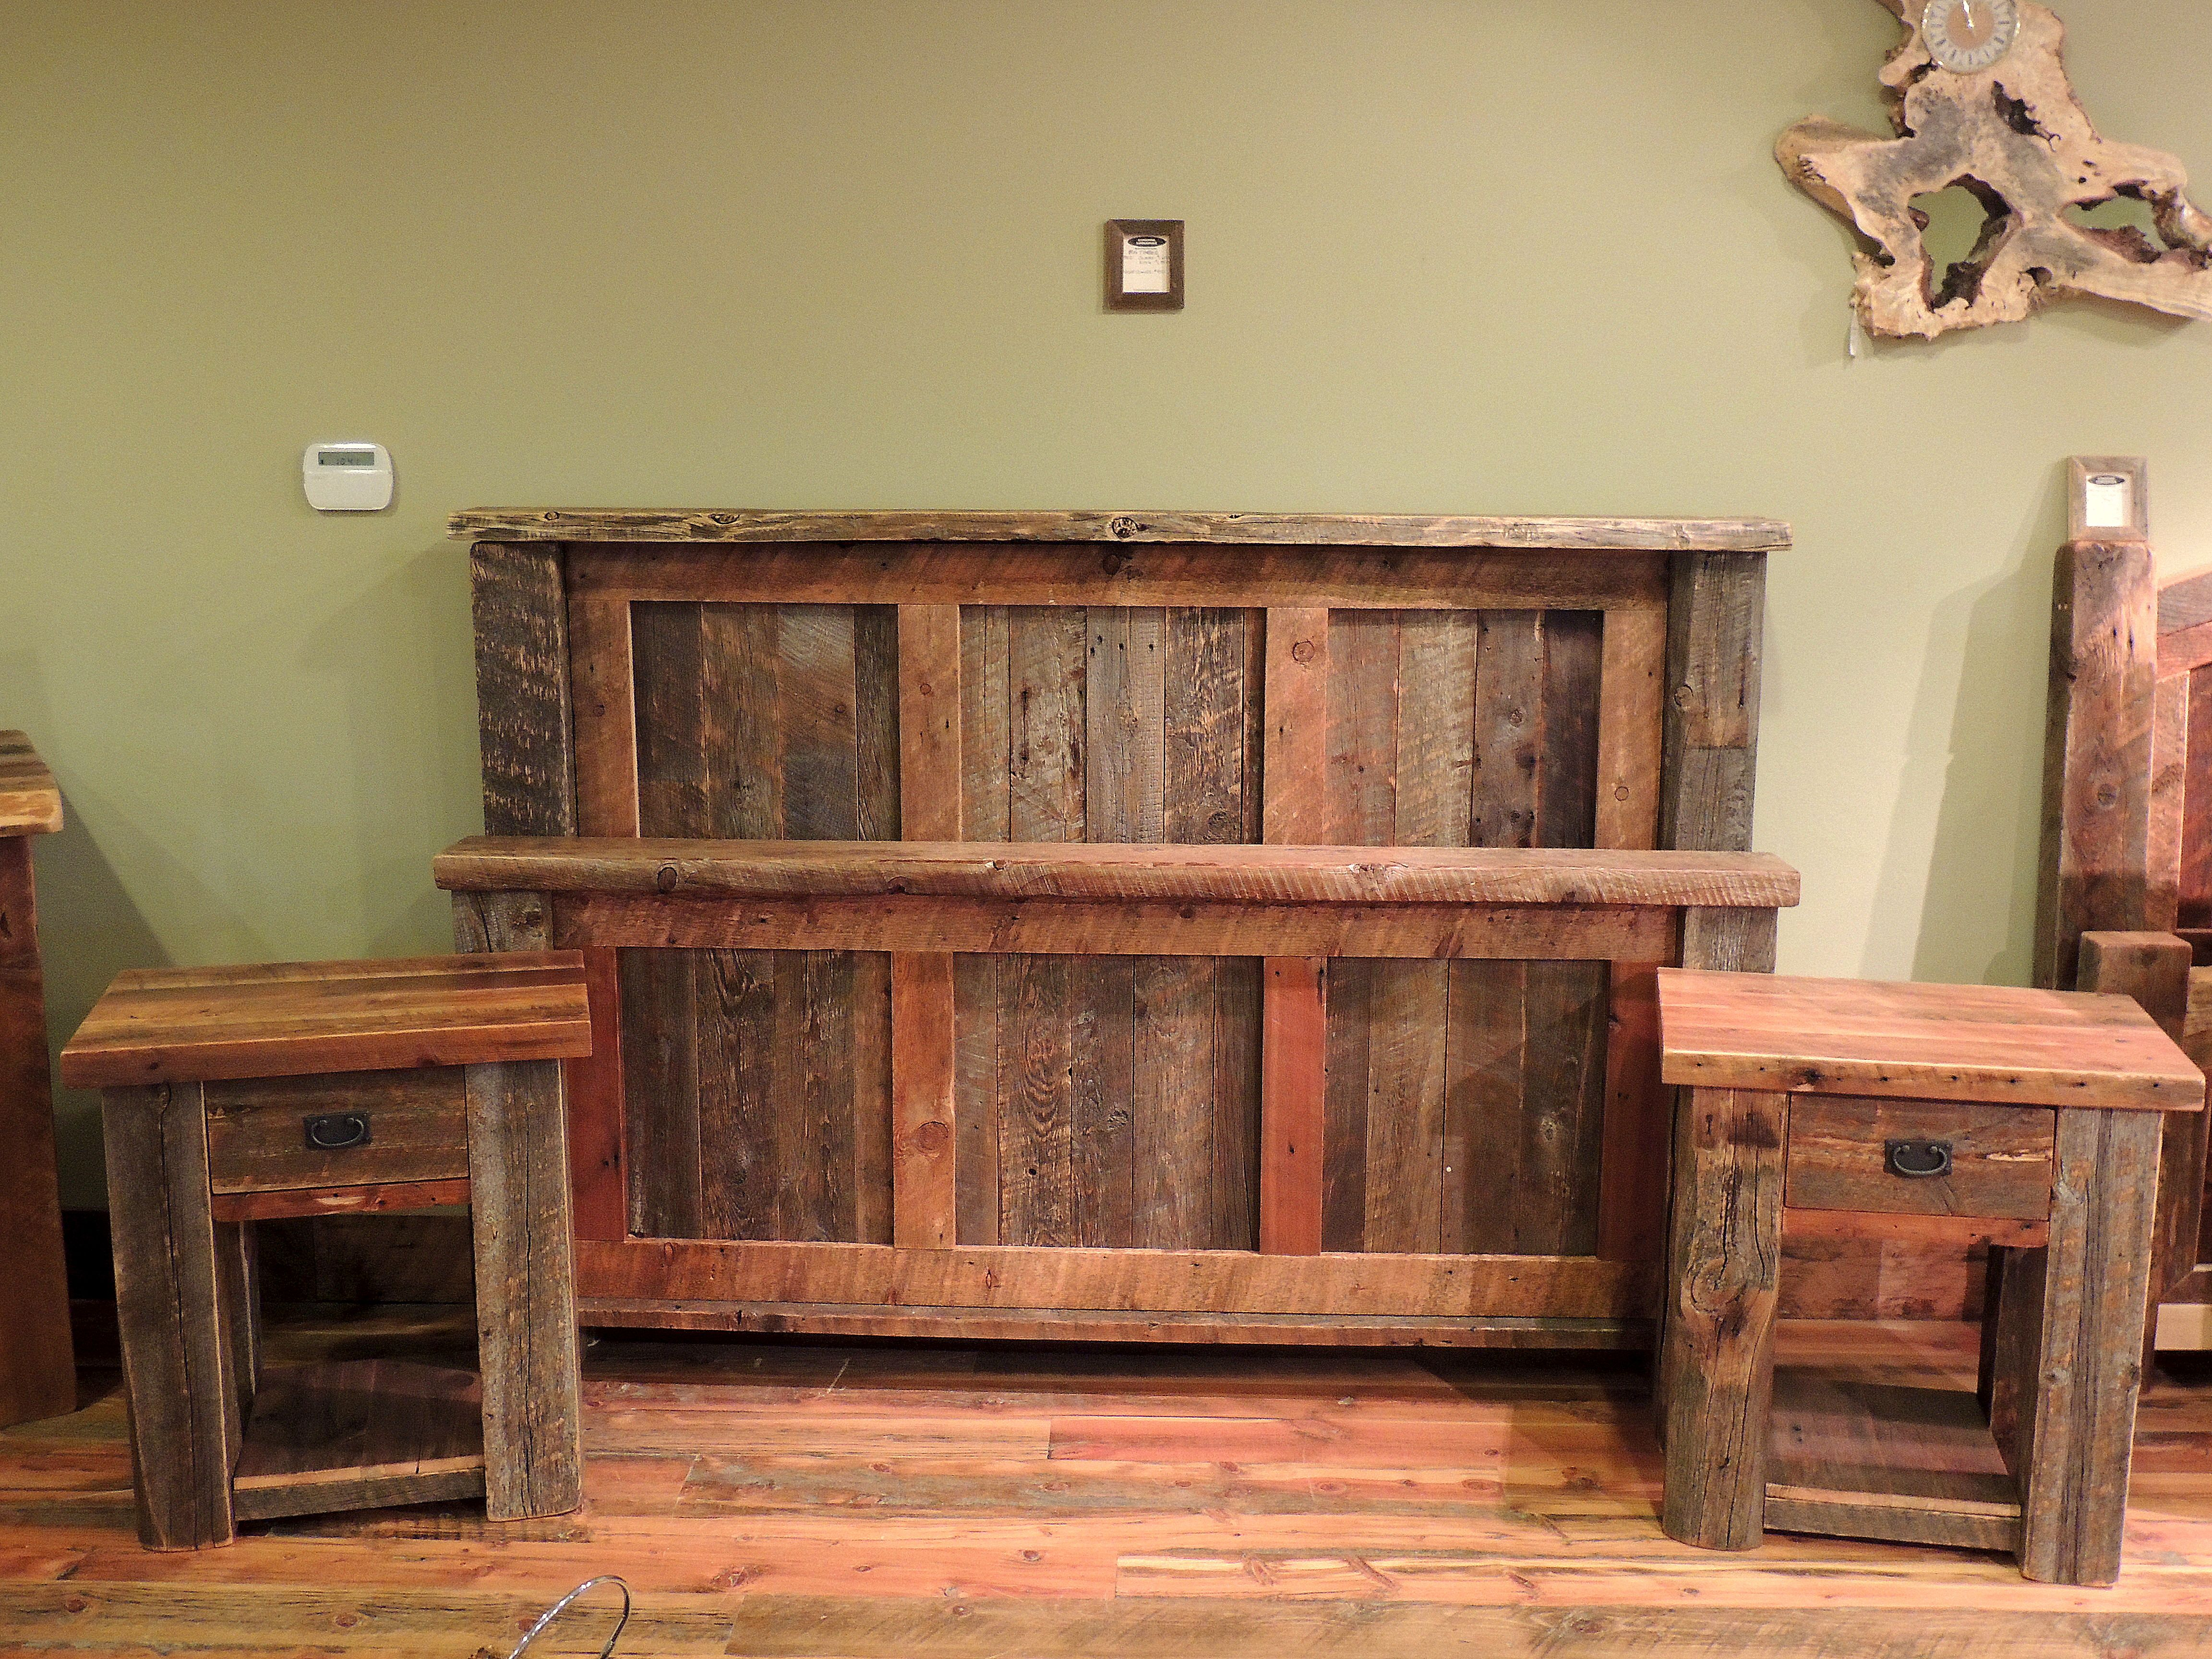 Big Timber Bed and Nightstands made with brown and grey